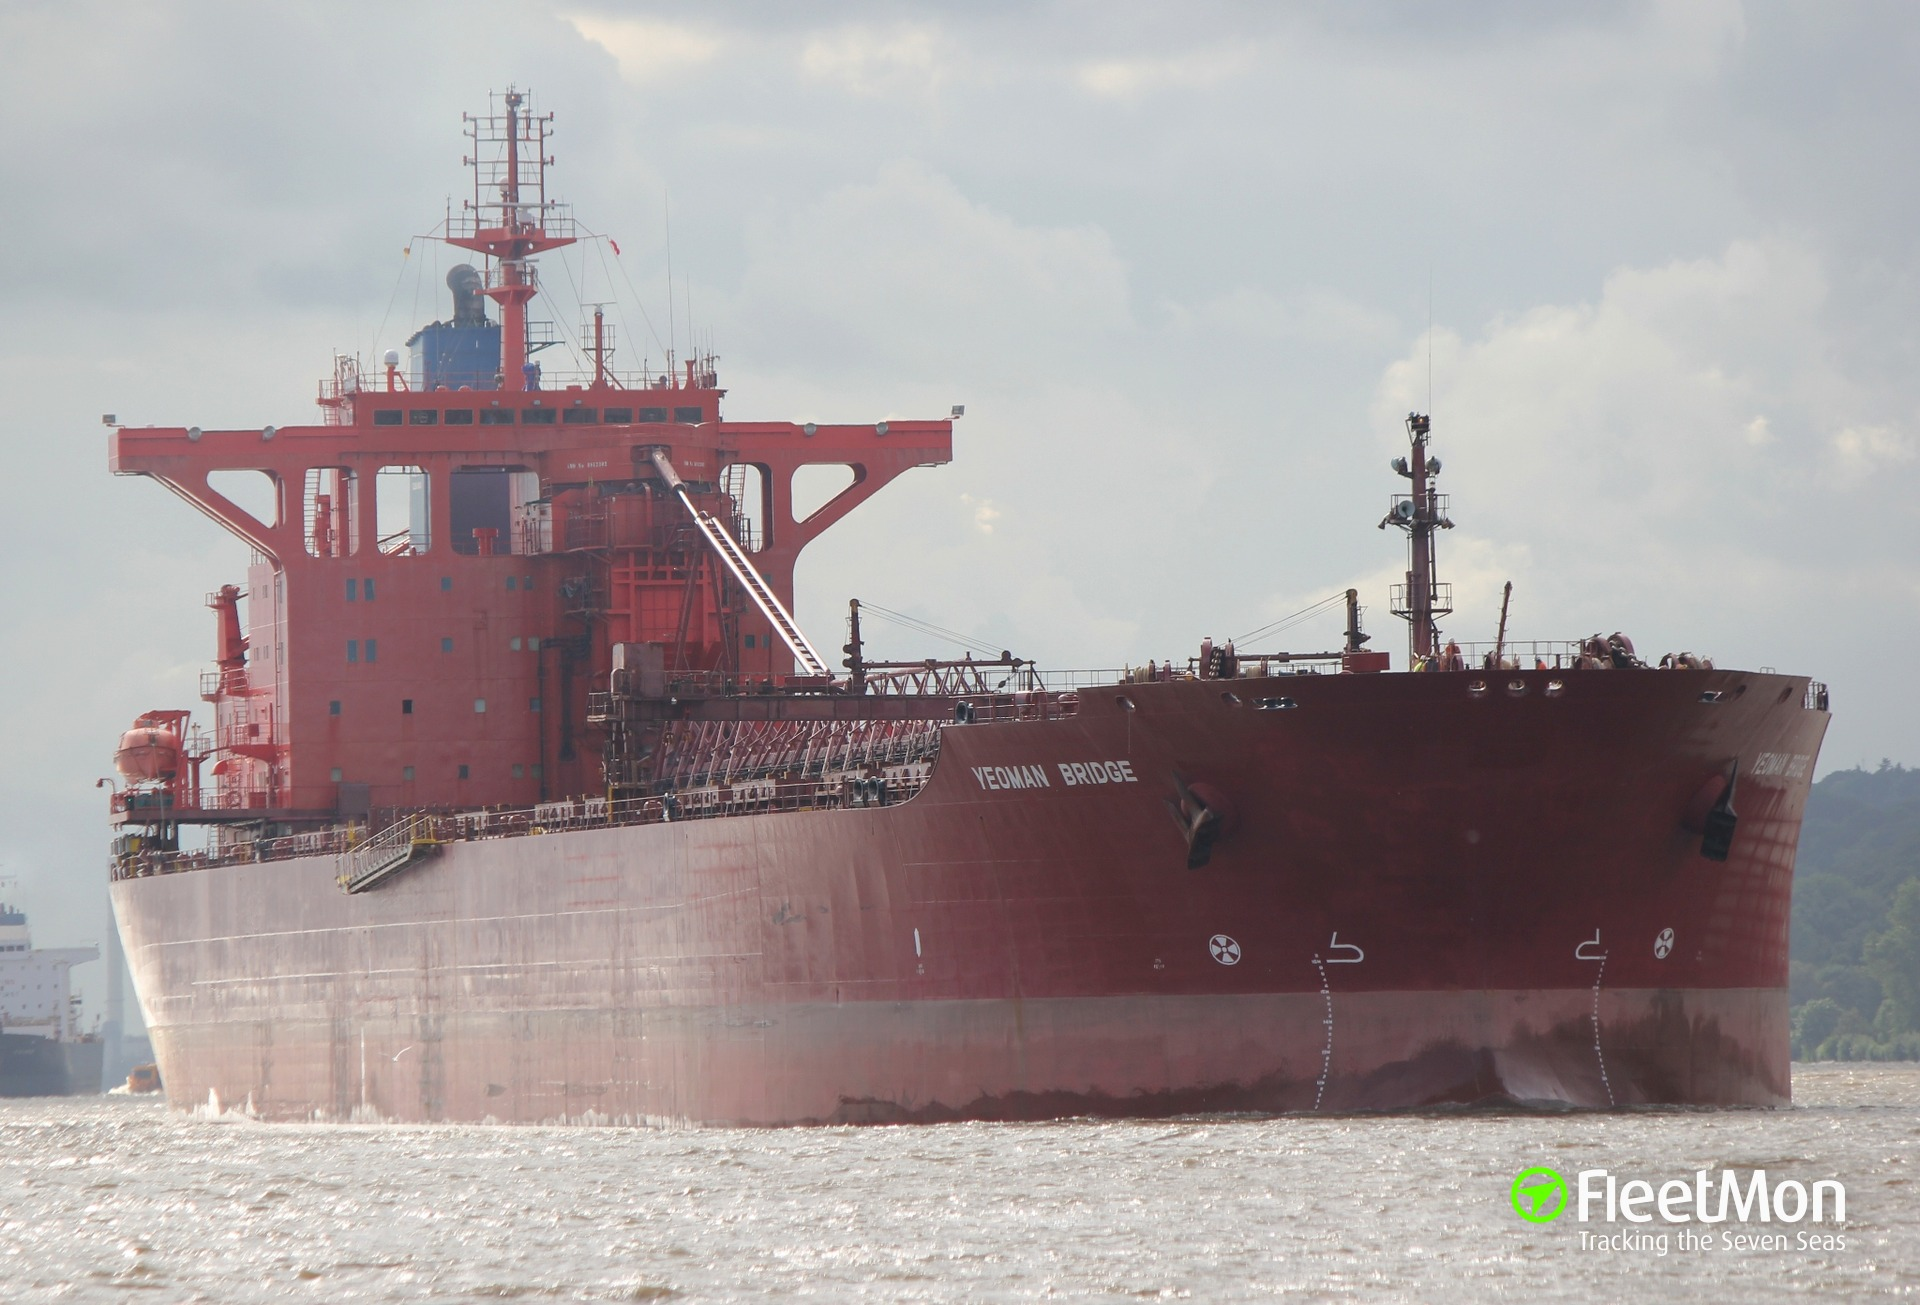 Bulk carrier YEOMAN BRIDGE collided with aframax PEARY SPIRIT